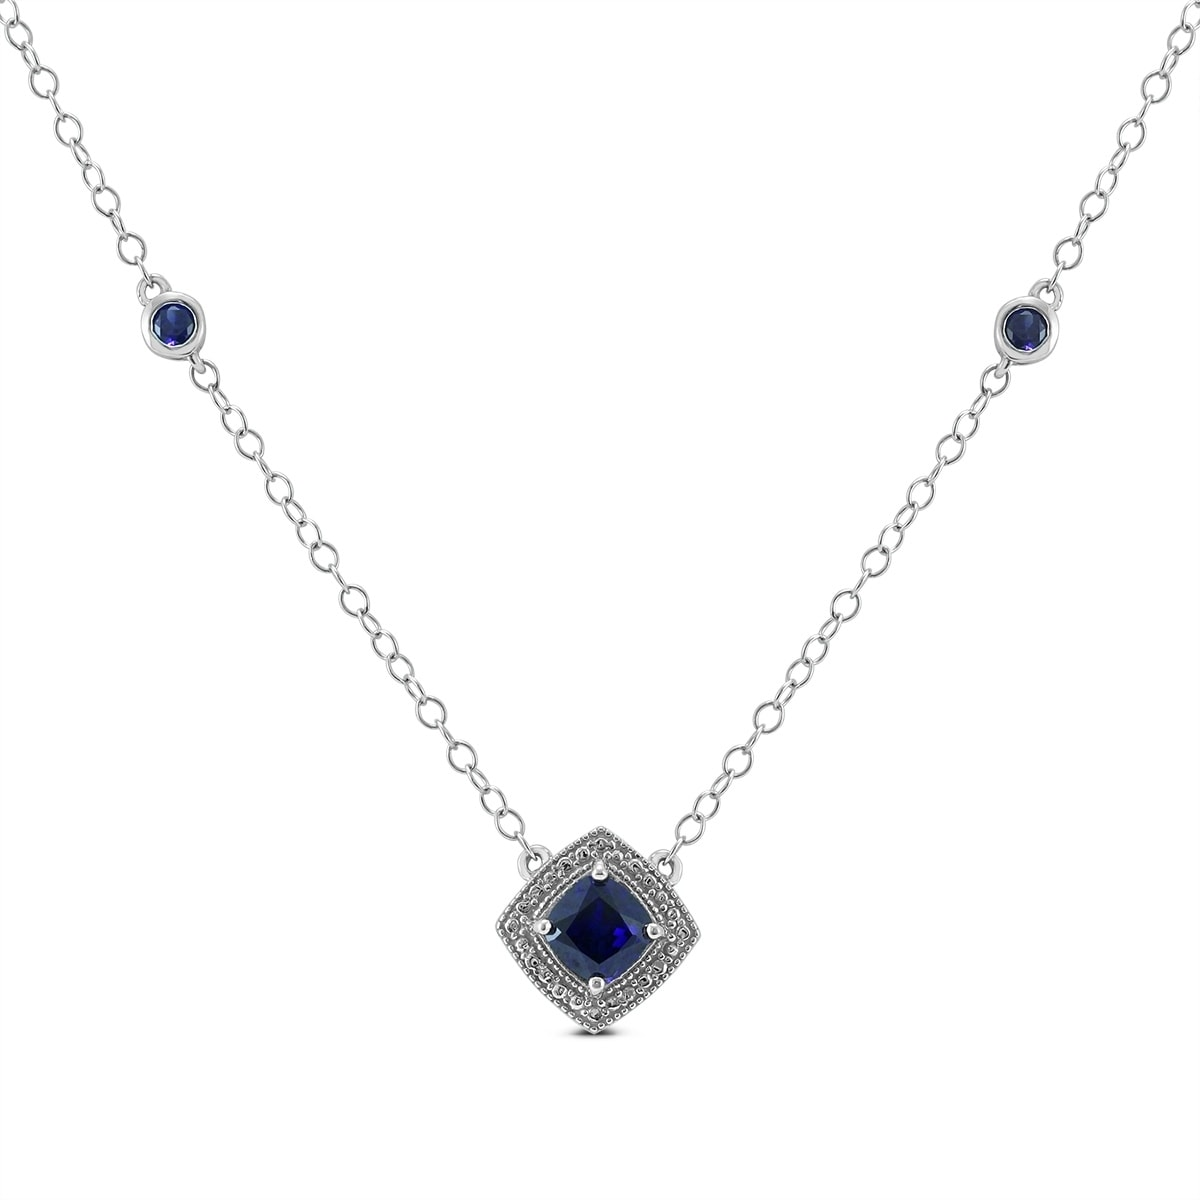 sapphire jewellery birthstone liliandesigns necklace september by original lilia nash product blue